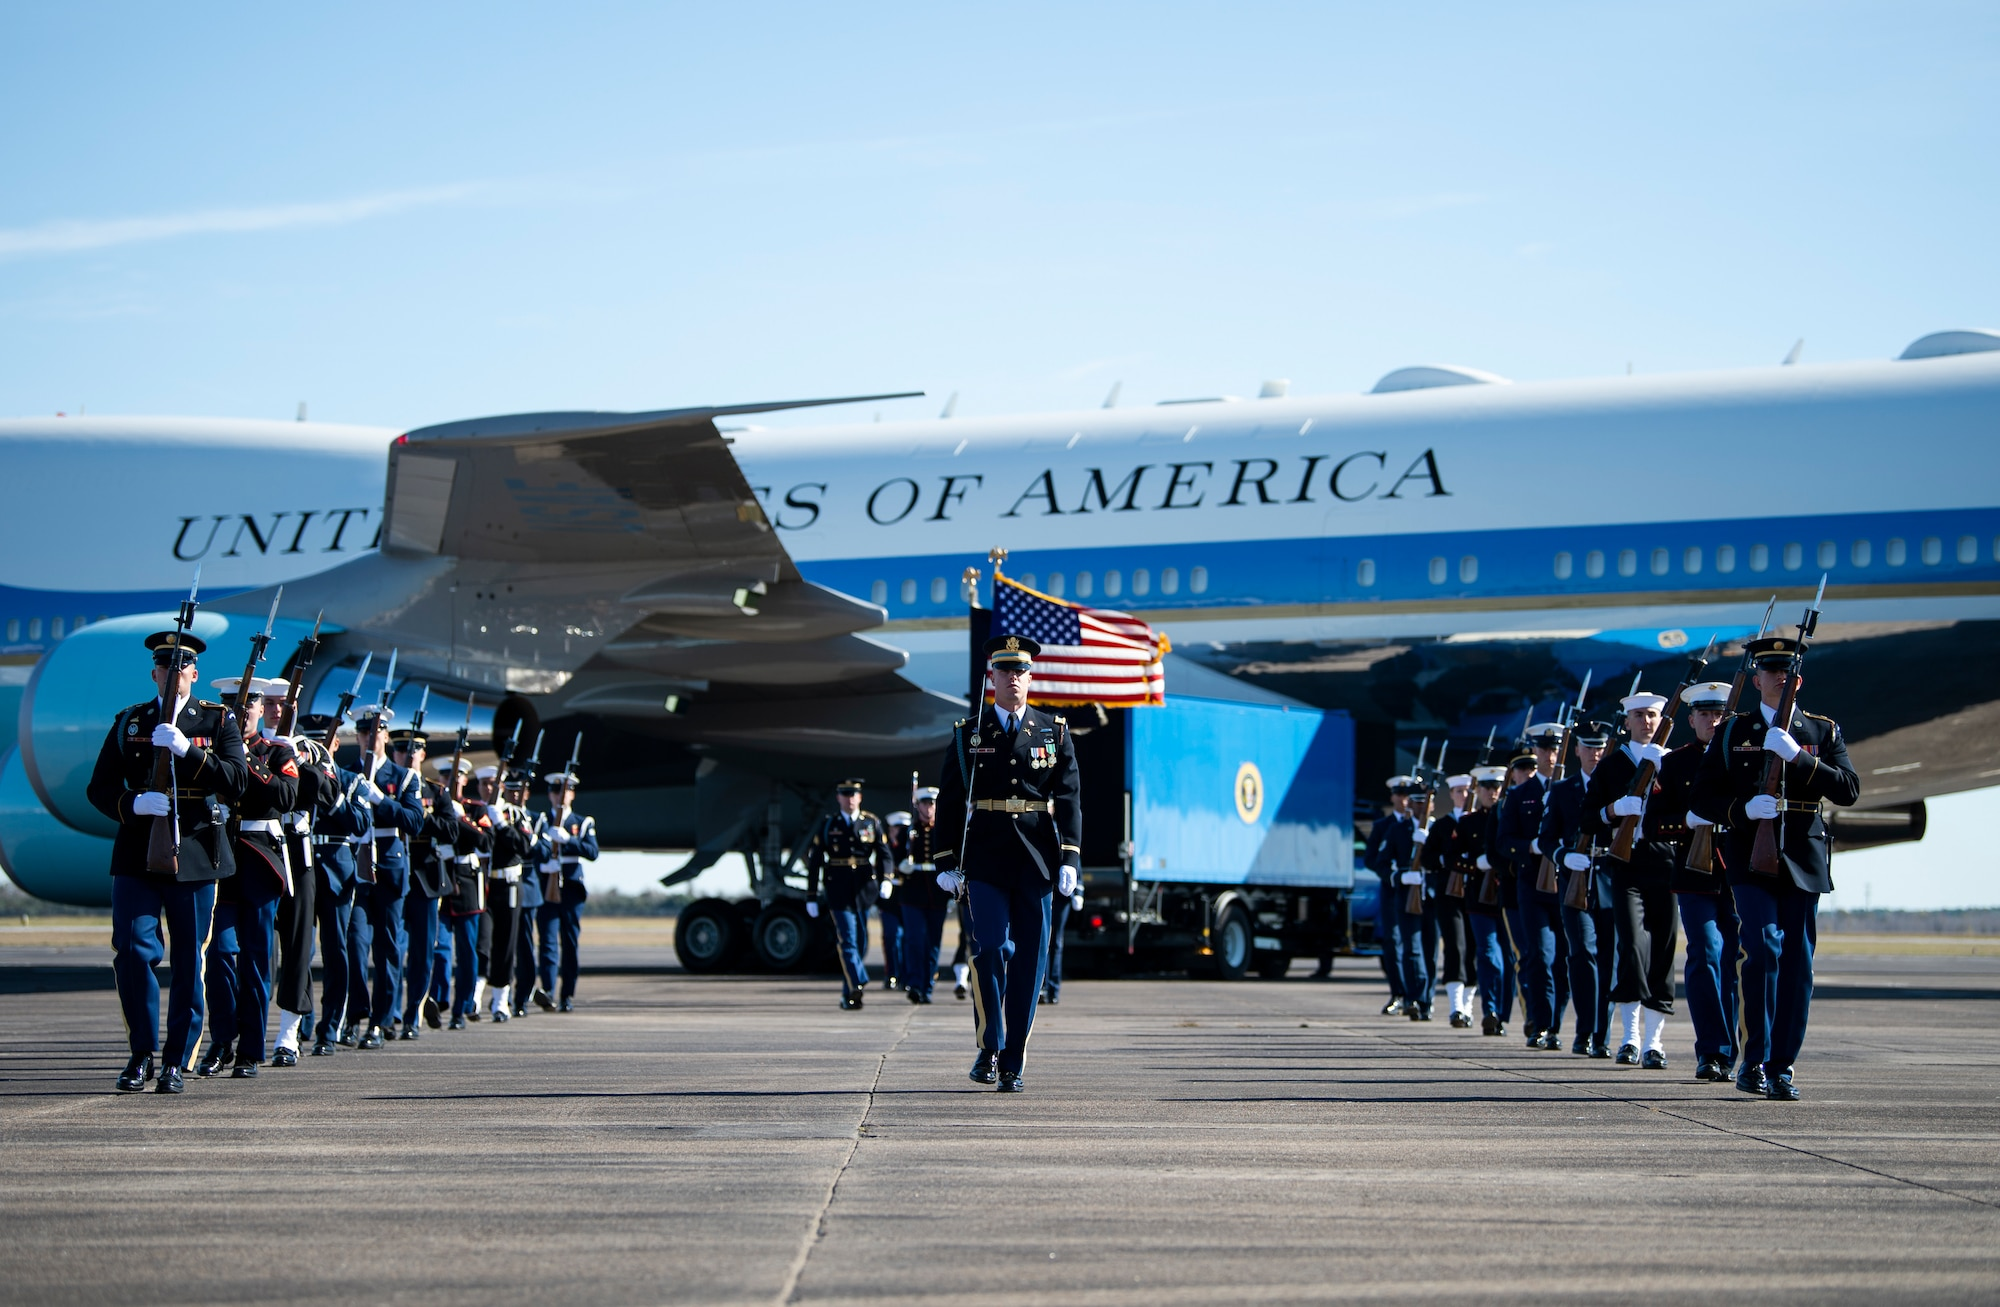 U.S. service members with the Joint Forces Honor Guard participate in a departure ceremony for former President George H.W. Bush A military honor guard walks off after taking part in a departure ceremony honoring former President George H.W. Bush in front of the Special Air Mission 41 plane at Ellington Field Joint Reserve Base in Houston, Texas, Dec. 3, 2018. Nearly 4,000 military and civilian personnel from across all branches of the U.S. armed forces, including Reserve and National Guard components, provided ceremonial support during George H.W. Bush's, the 41st President of the United States state funeral.  (U.S. Air Force photo by Tech Sgt. Andrew Lee)